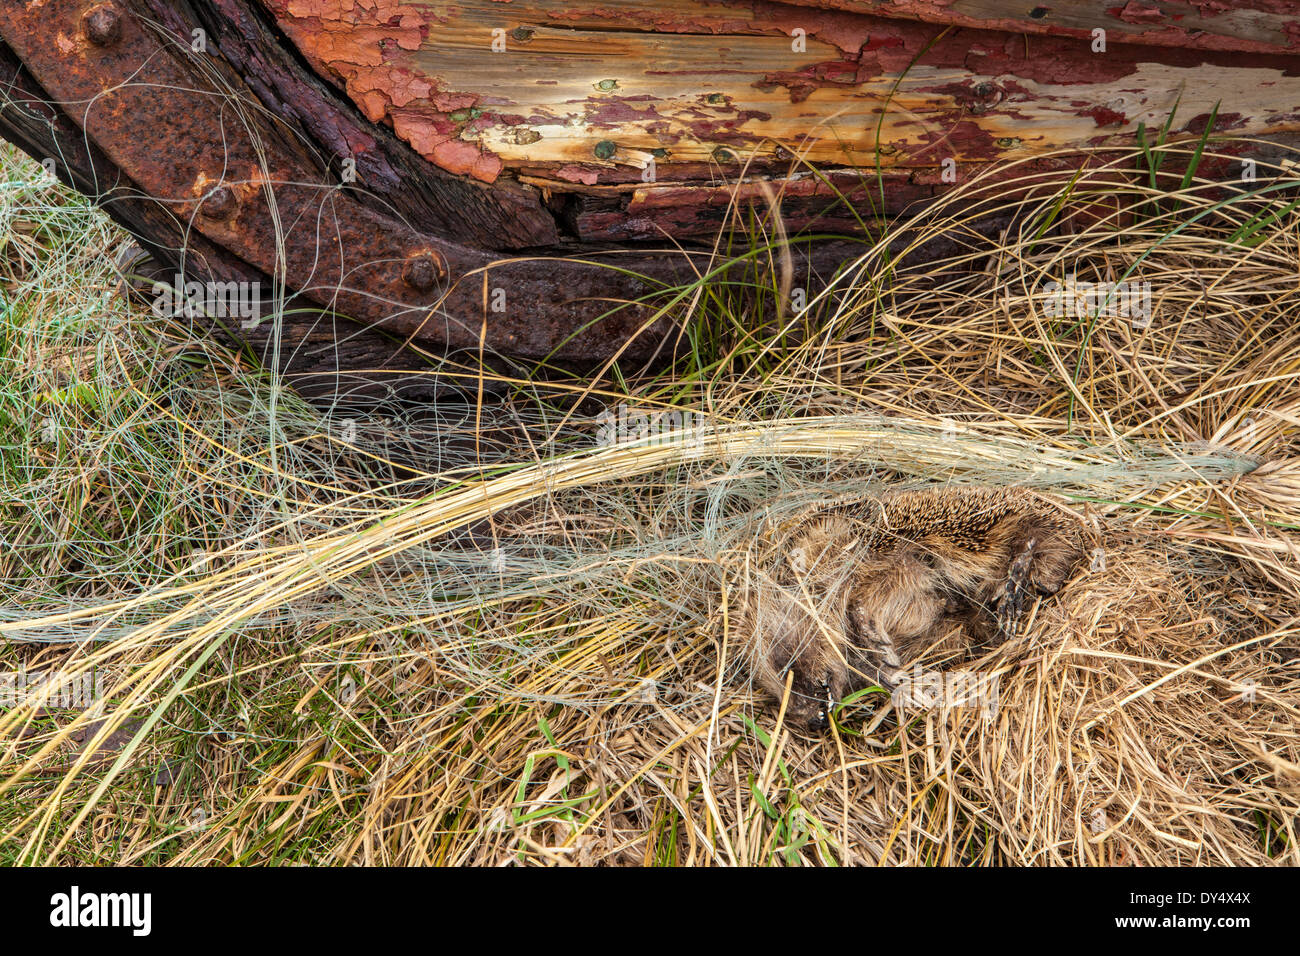 Dead Hedgehog and Rotting Boat Hull on Holy Island, Lindisfarne, England - Stock Image